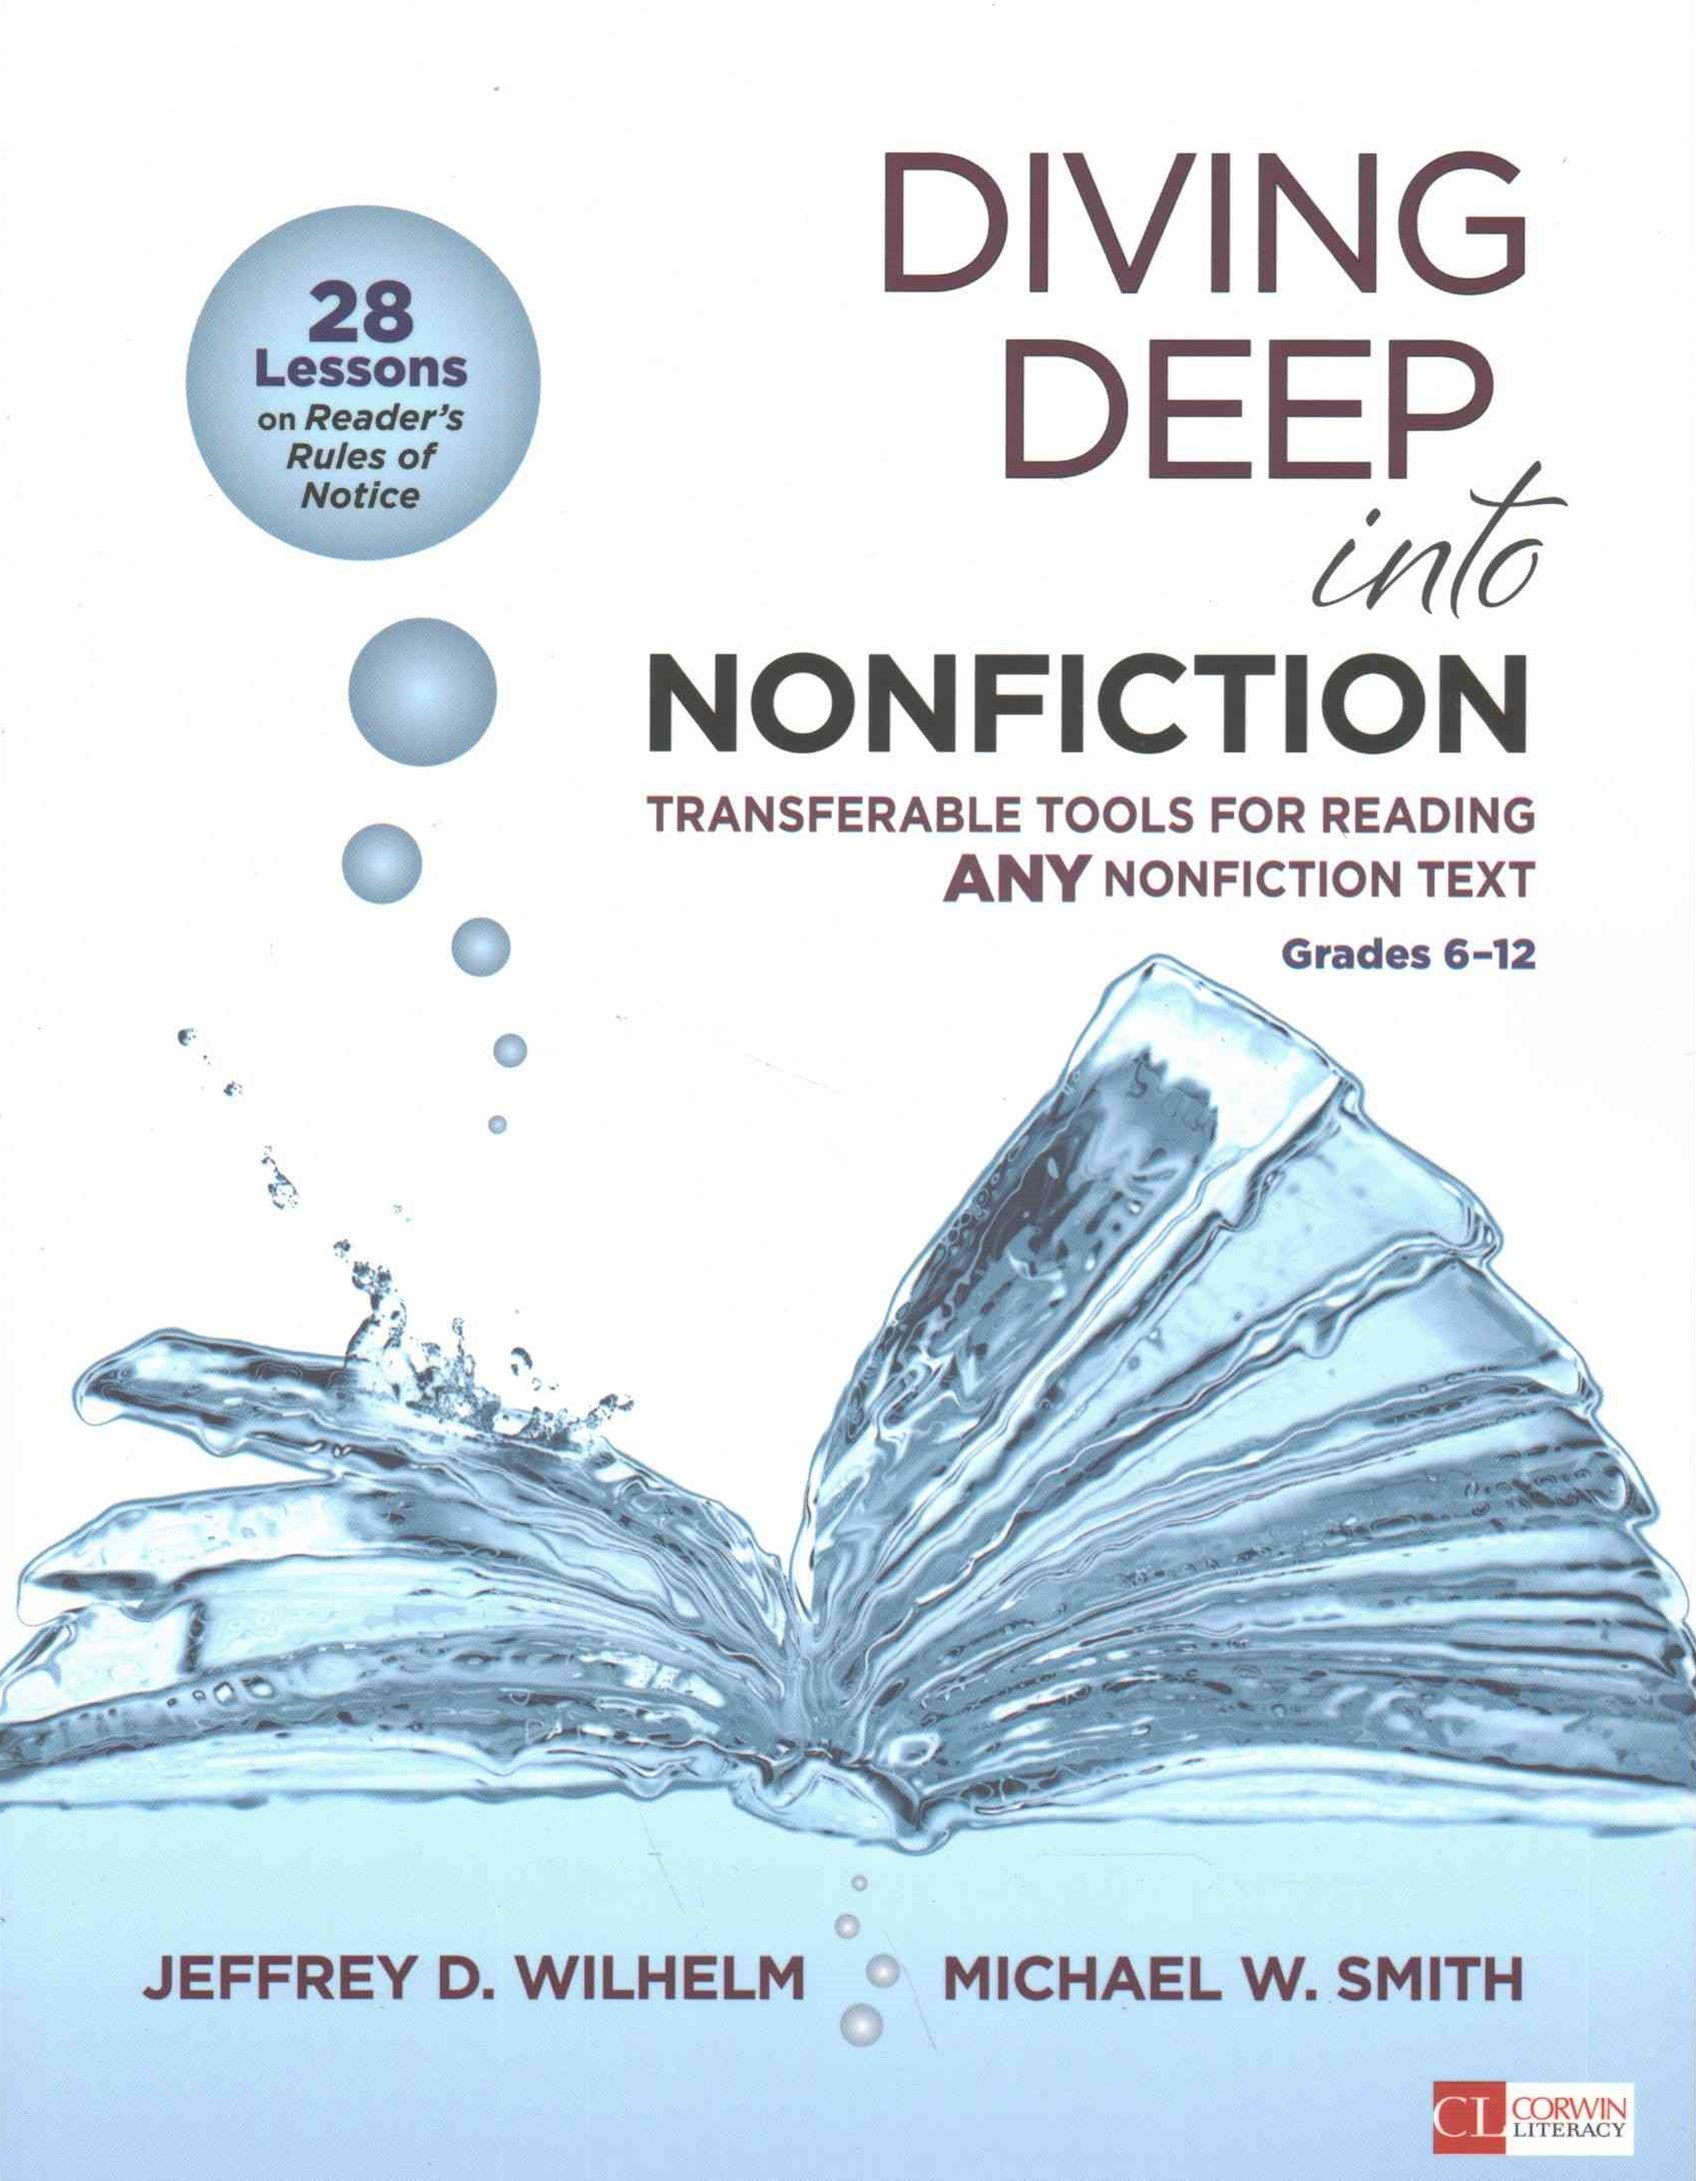 Diving Deep into Nonfiction